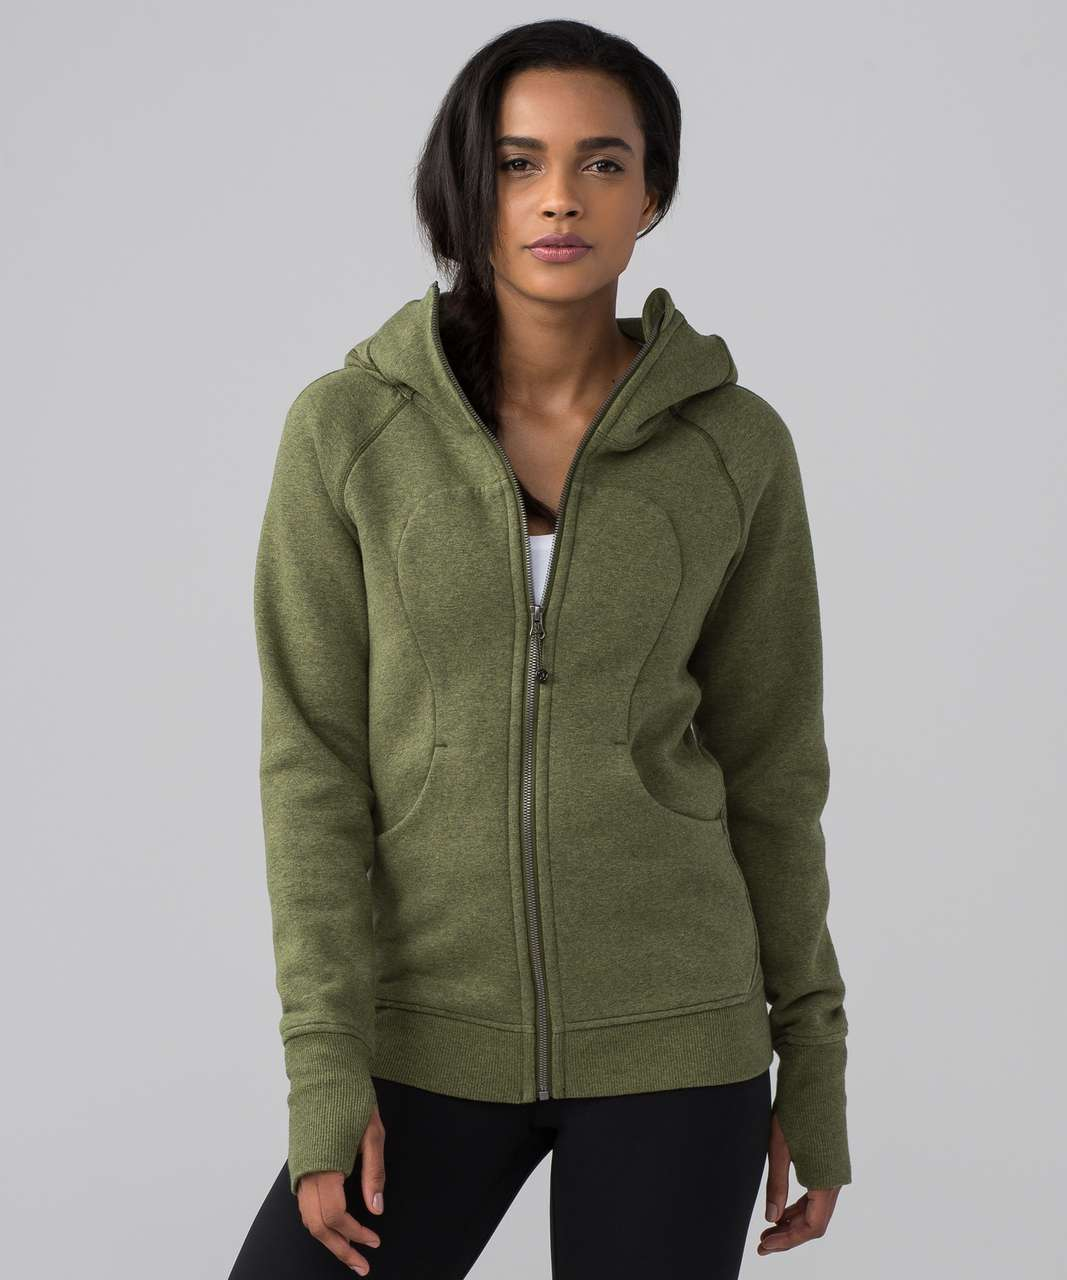 Lululemon Scuba Hoodie Classic Cotton Fleece - Heathered Brave Olive